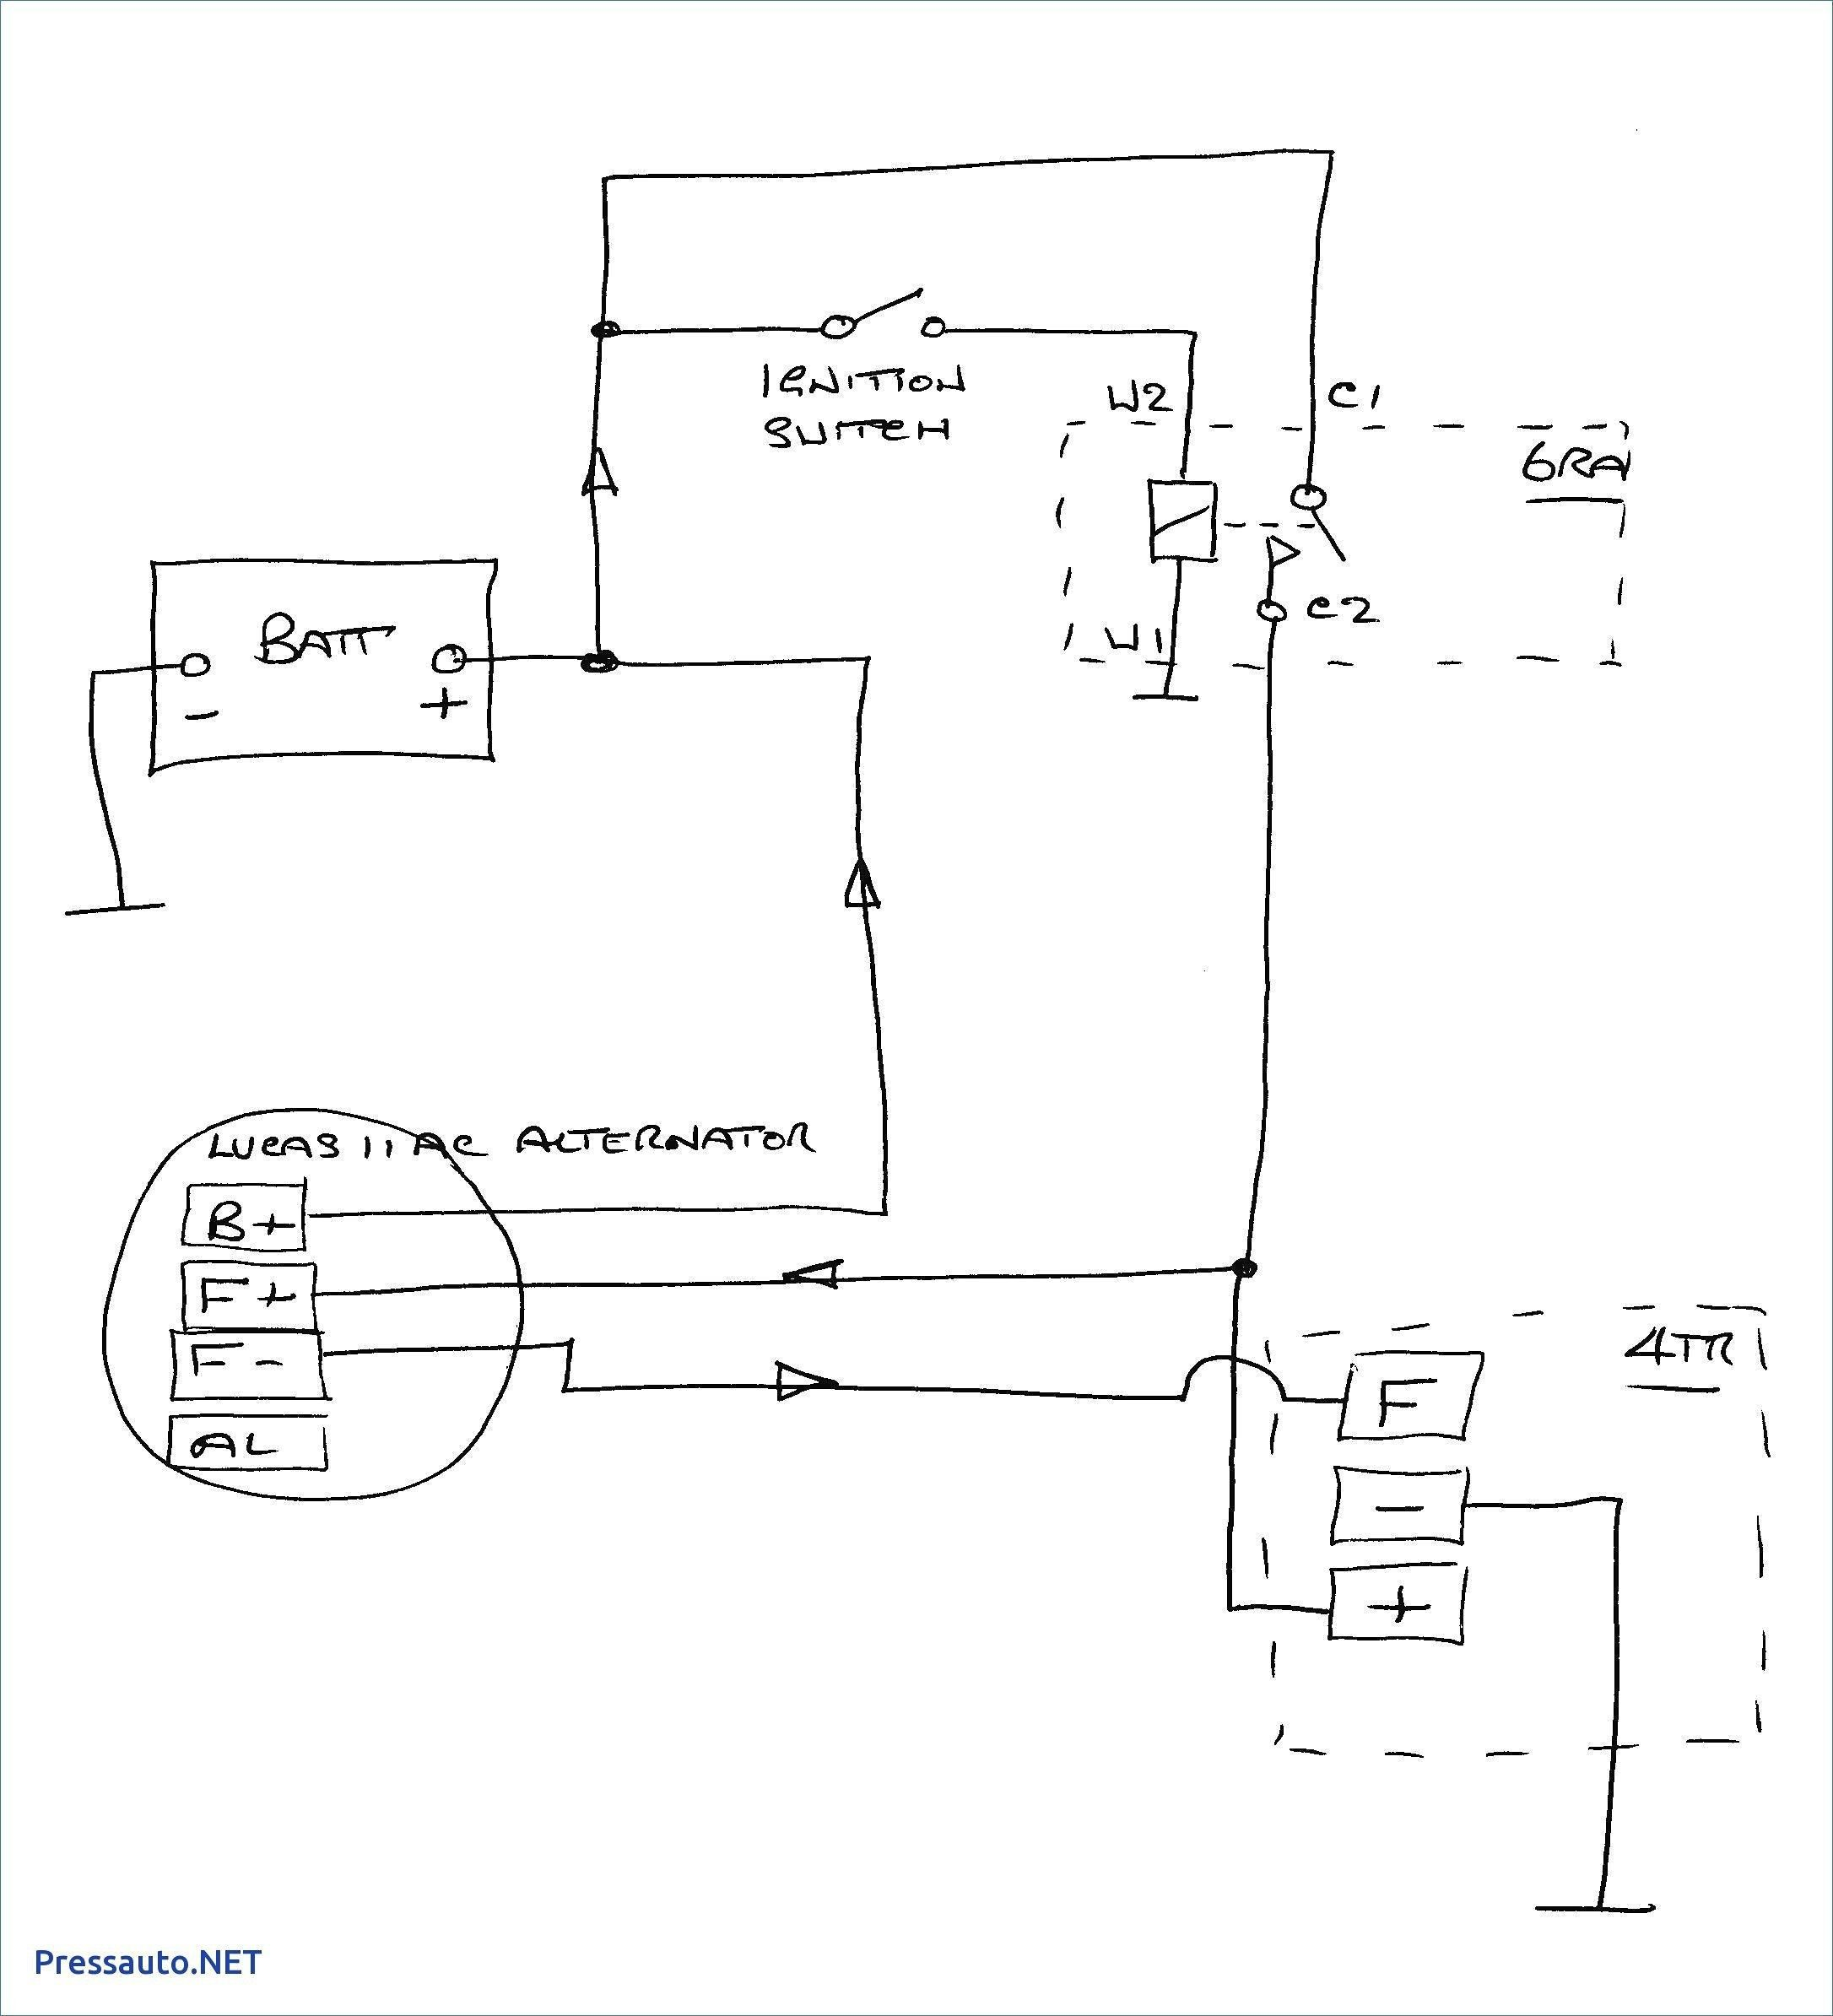 72 Chevy C10 Wiring Schematic Gota Wiring Diagram